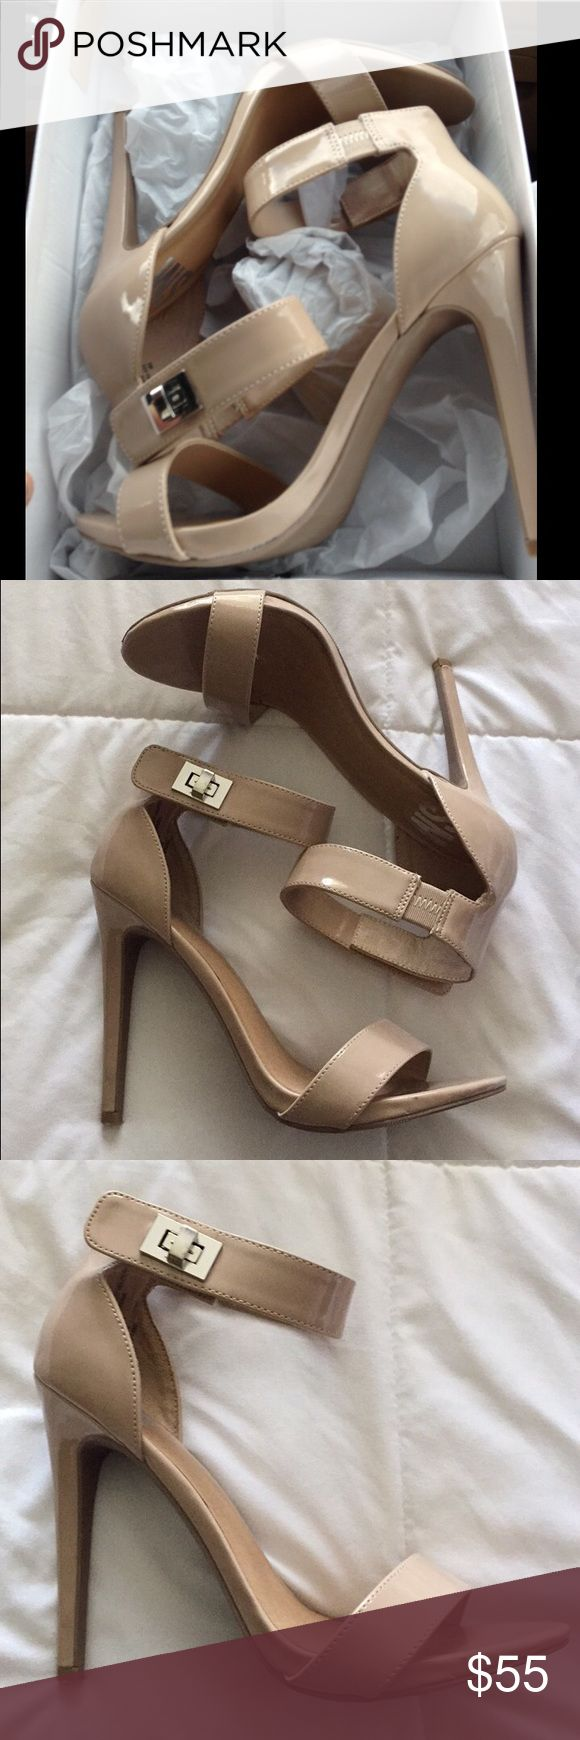 Steve Madden Nude Heels Steve Madden Nude Heels. Very classic nude heels. Only worn once to prom! Love these heels very much. Cute silver clasp to close the heel. 8M Steve Madden Shoes Heels